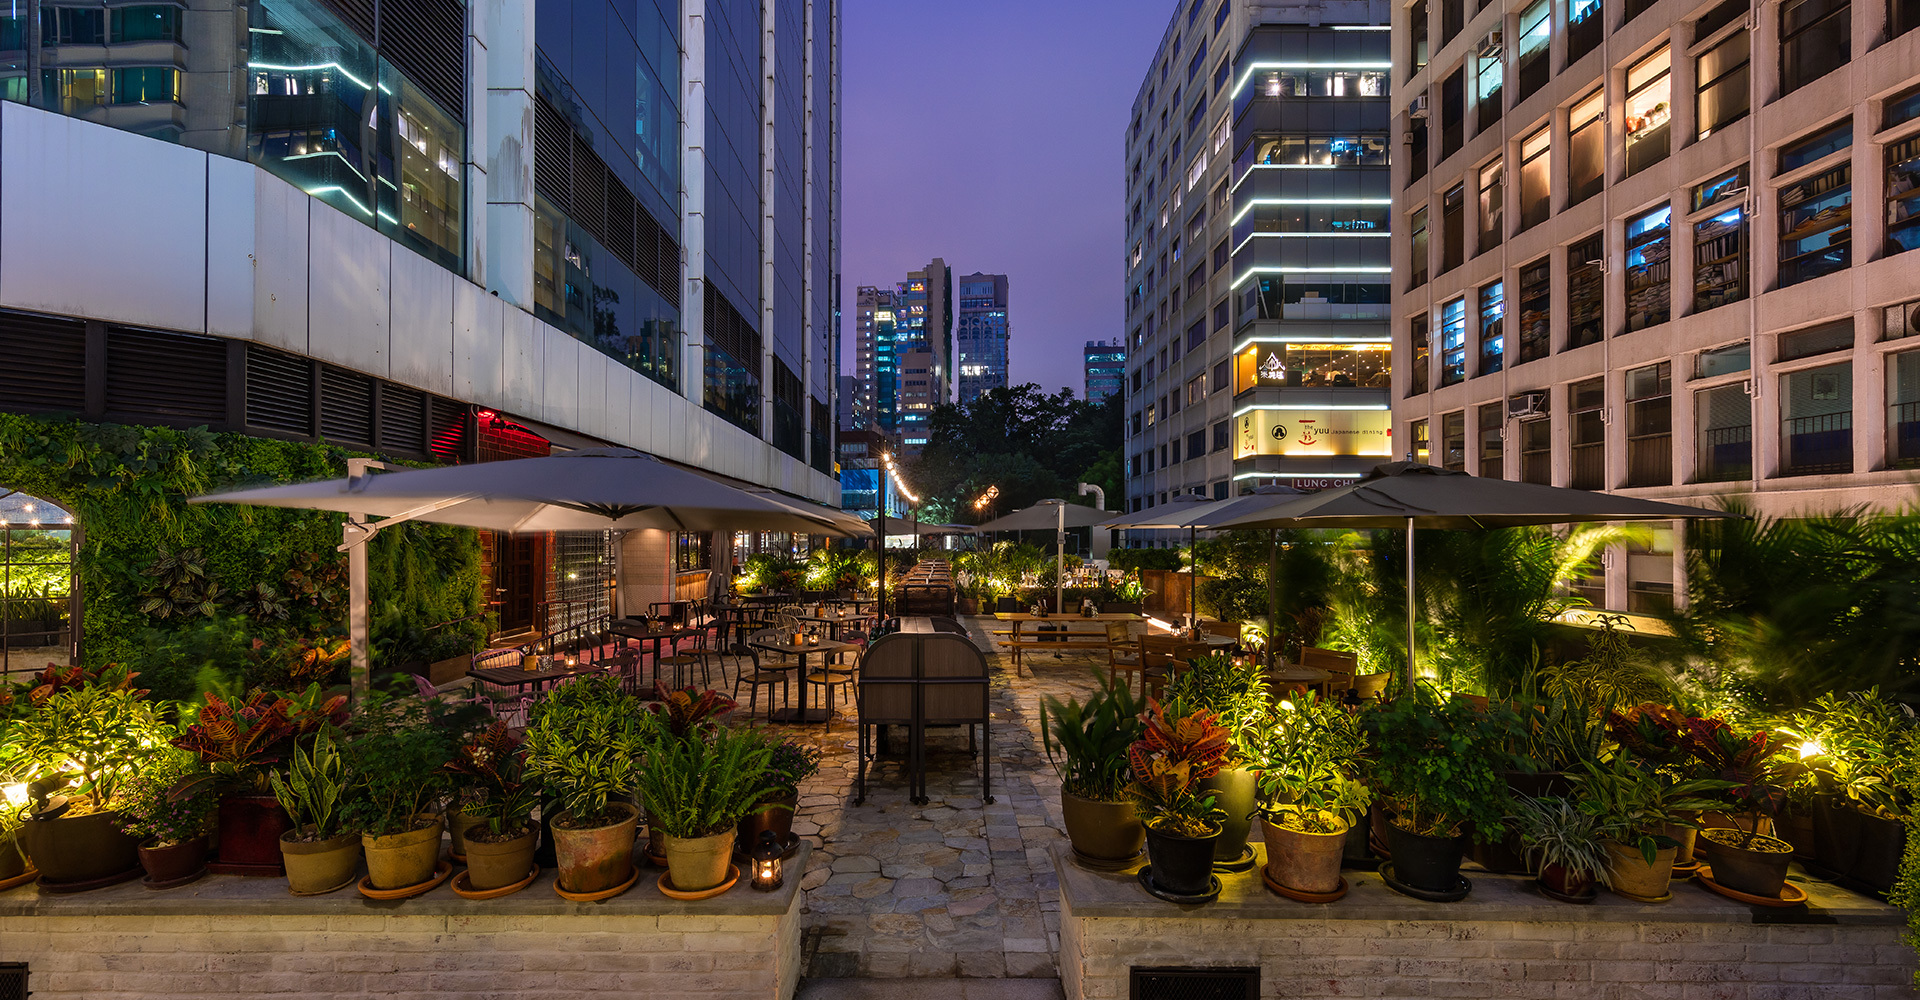 The best restaurants in Hong Kong with outdoor seating